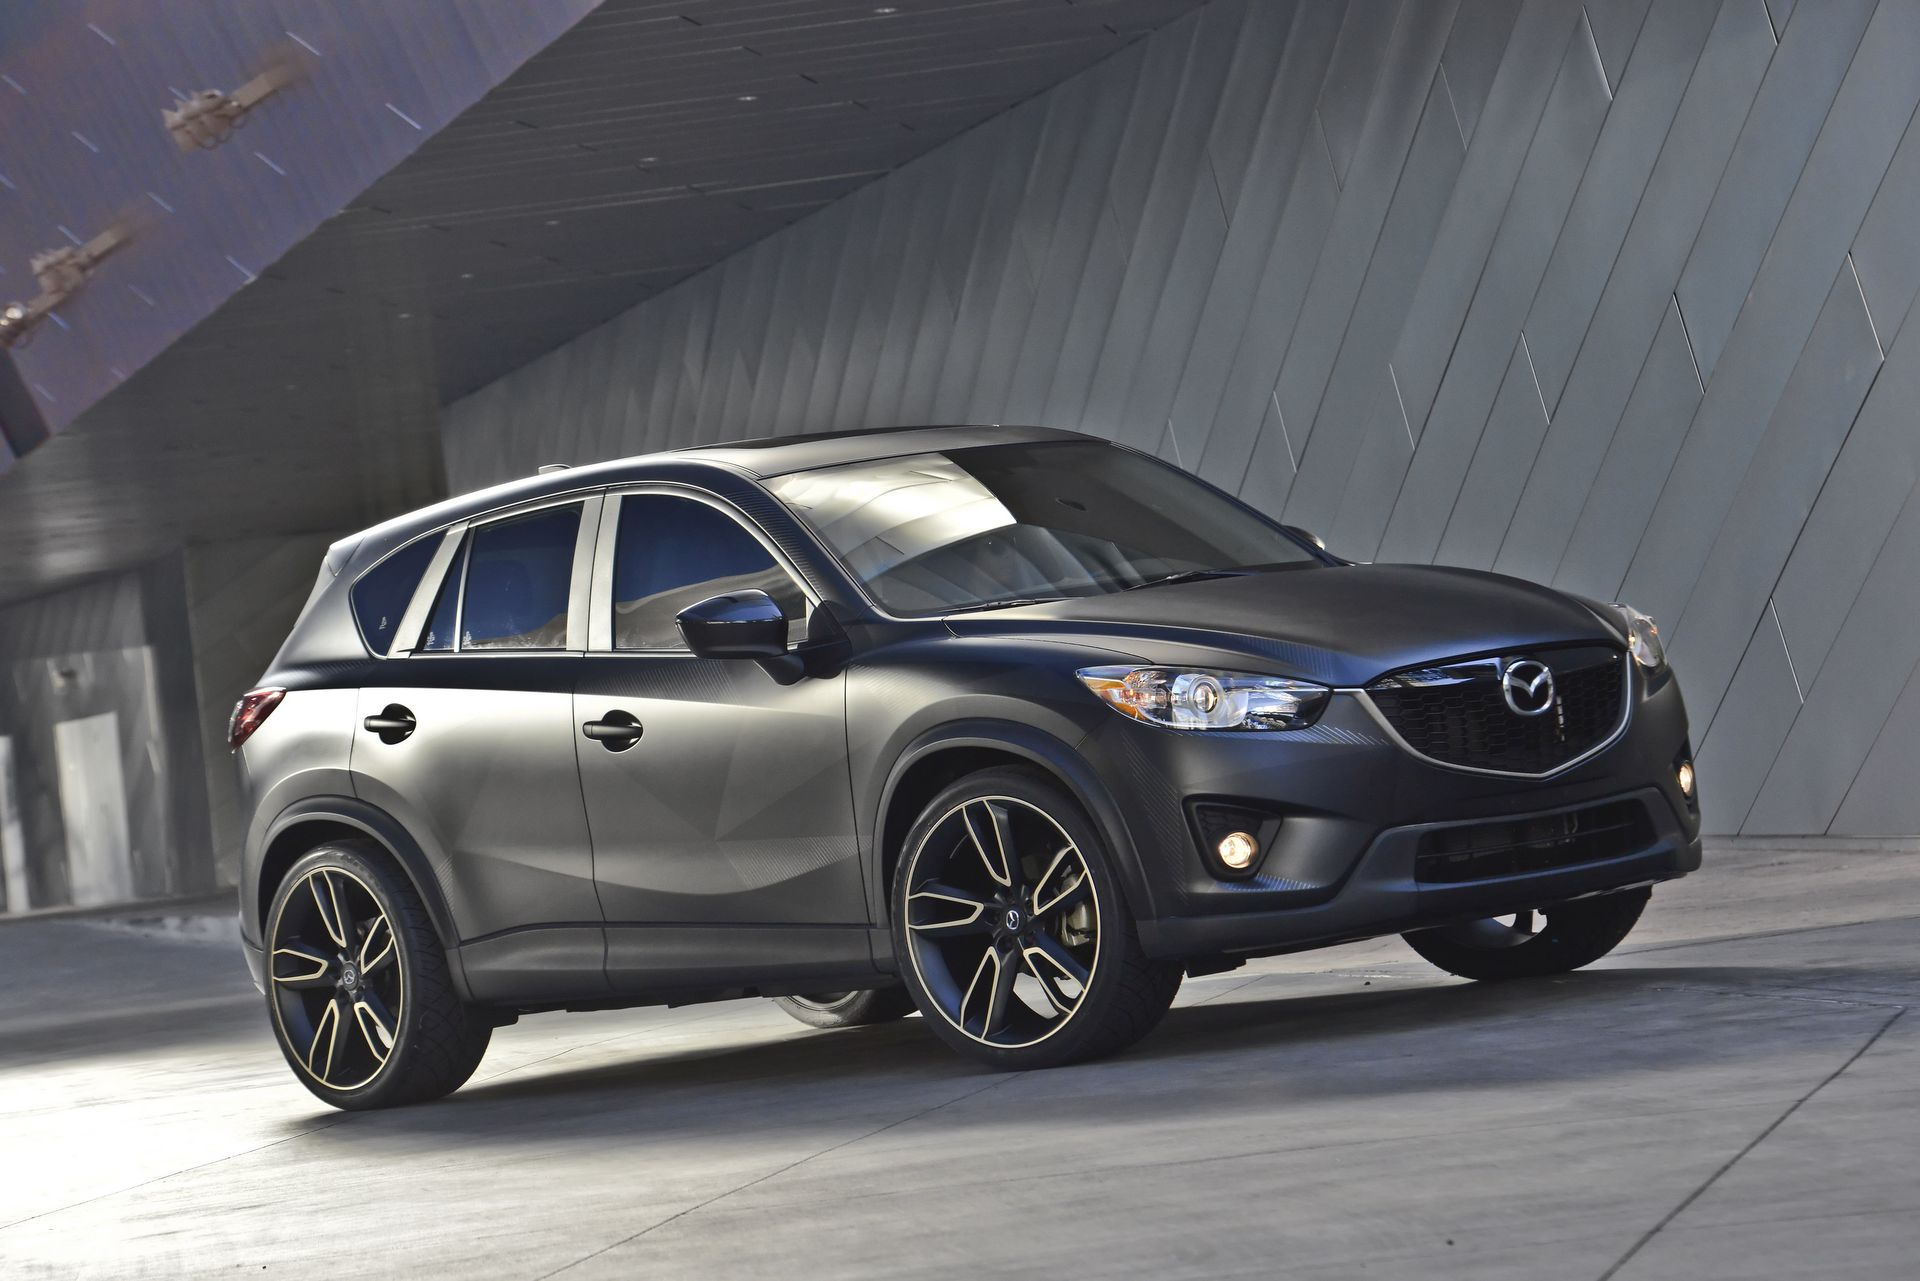 Custom Mazda CX-5 Urban Unveiled at SEMA 2012 - ForceGT.com